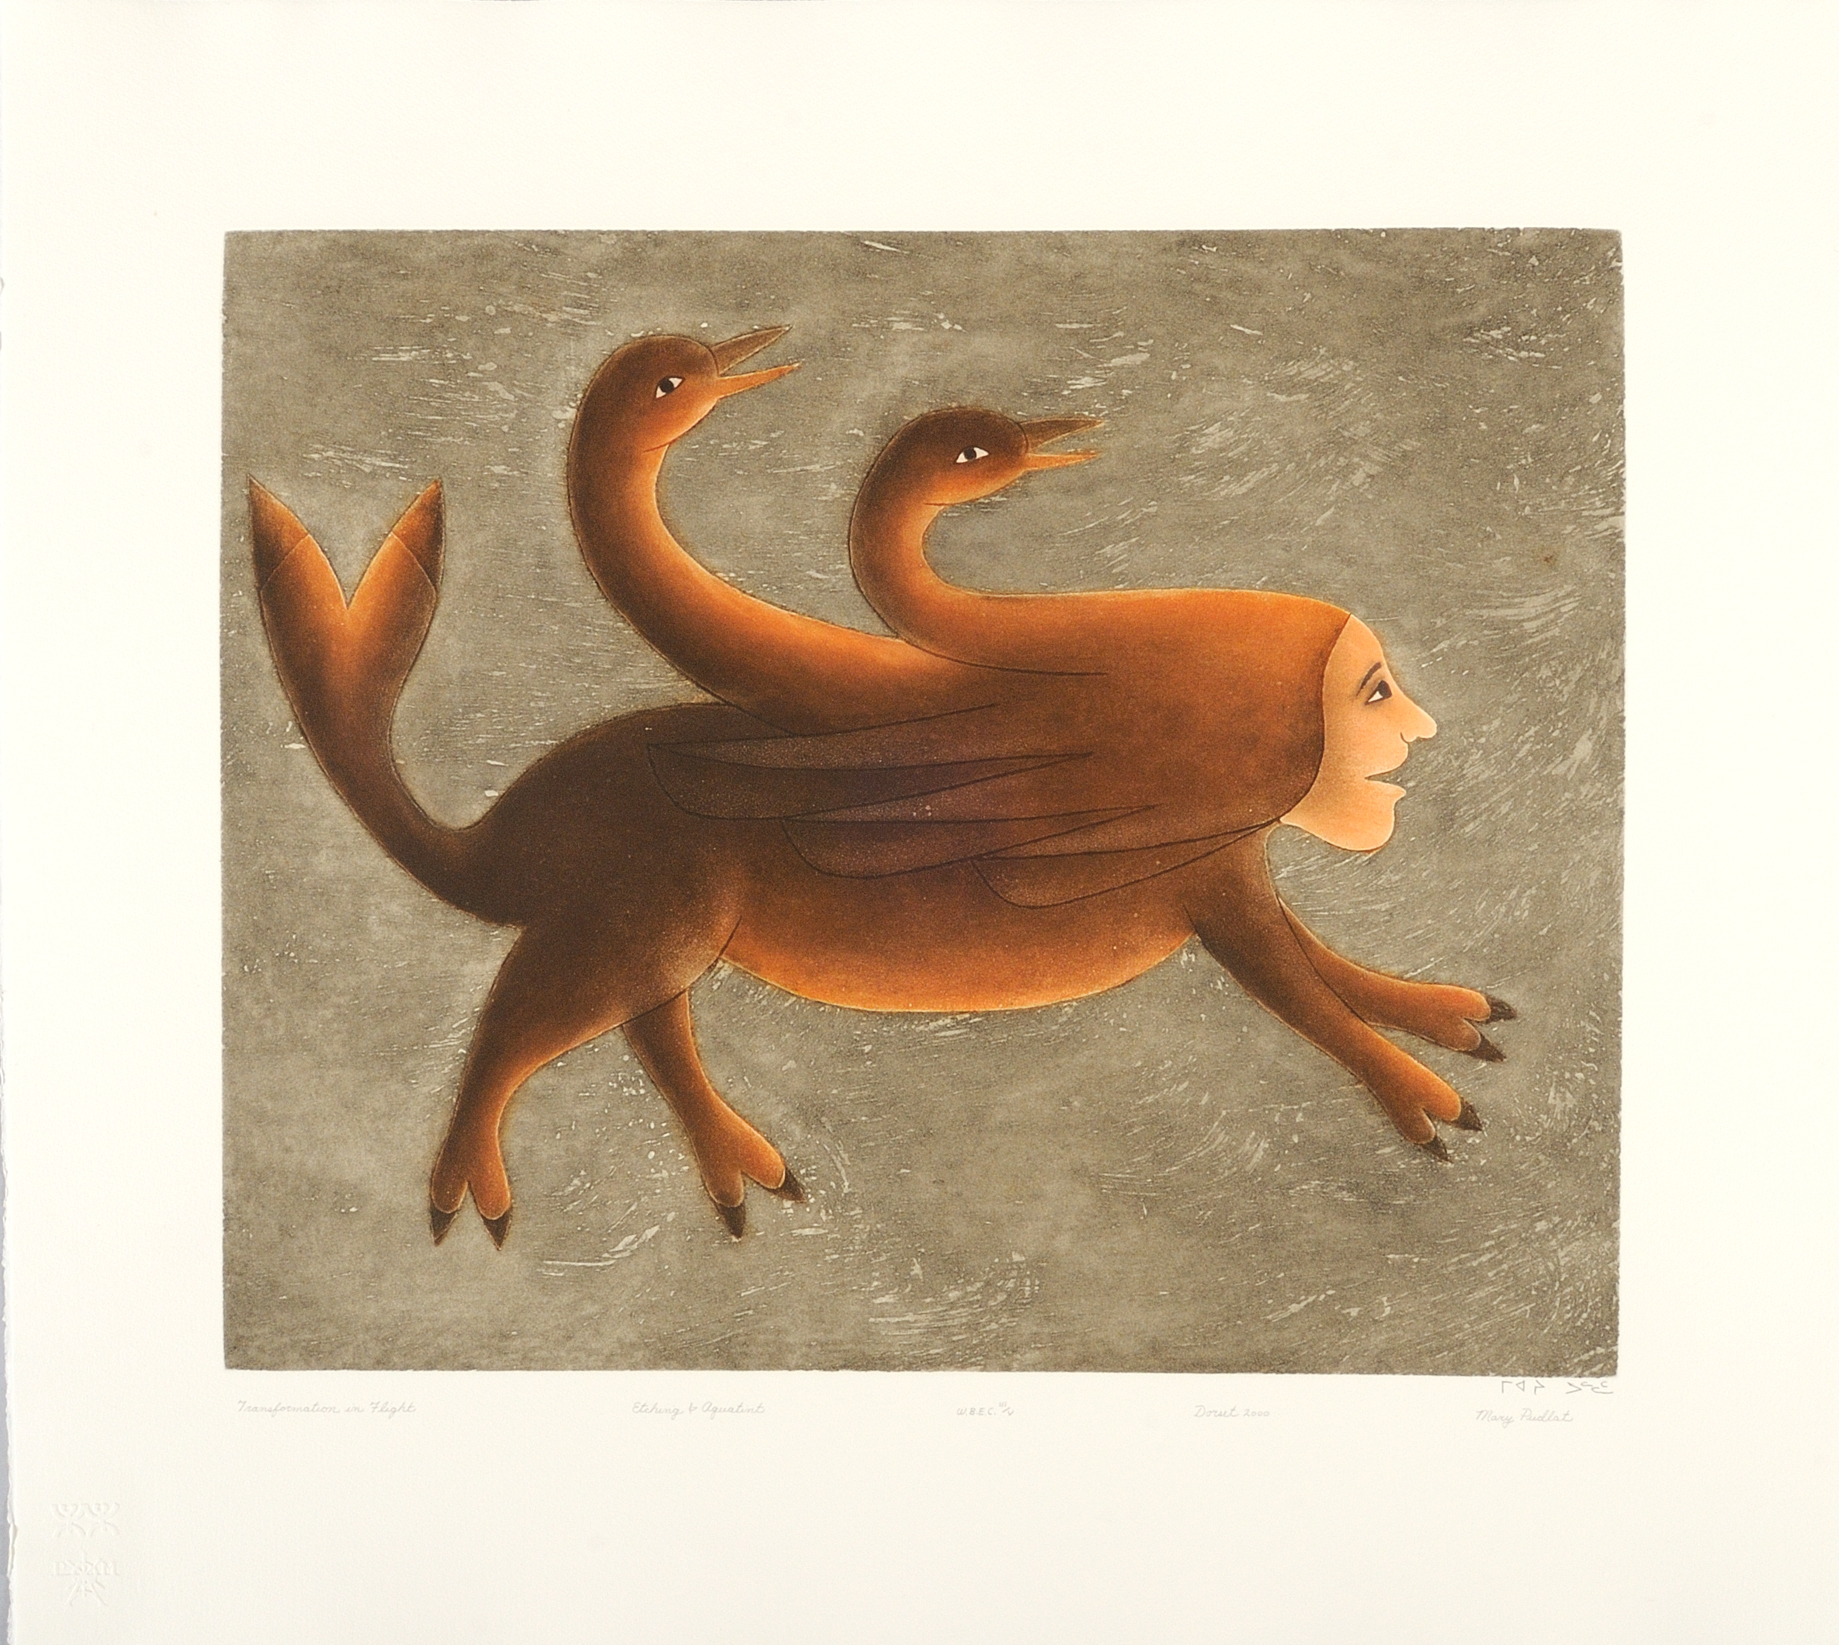 Mary Pudlat  TRANSFORMATION IN FLIGHT Etching & Aquatint 2000 79.5 x 87.3 cm $600.00 CDN Released in the 2000 collection Dorset ID#: 00-17